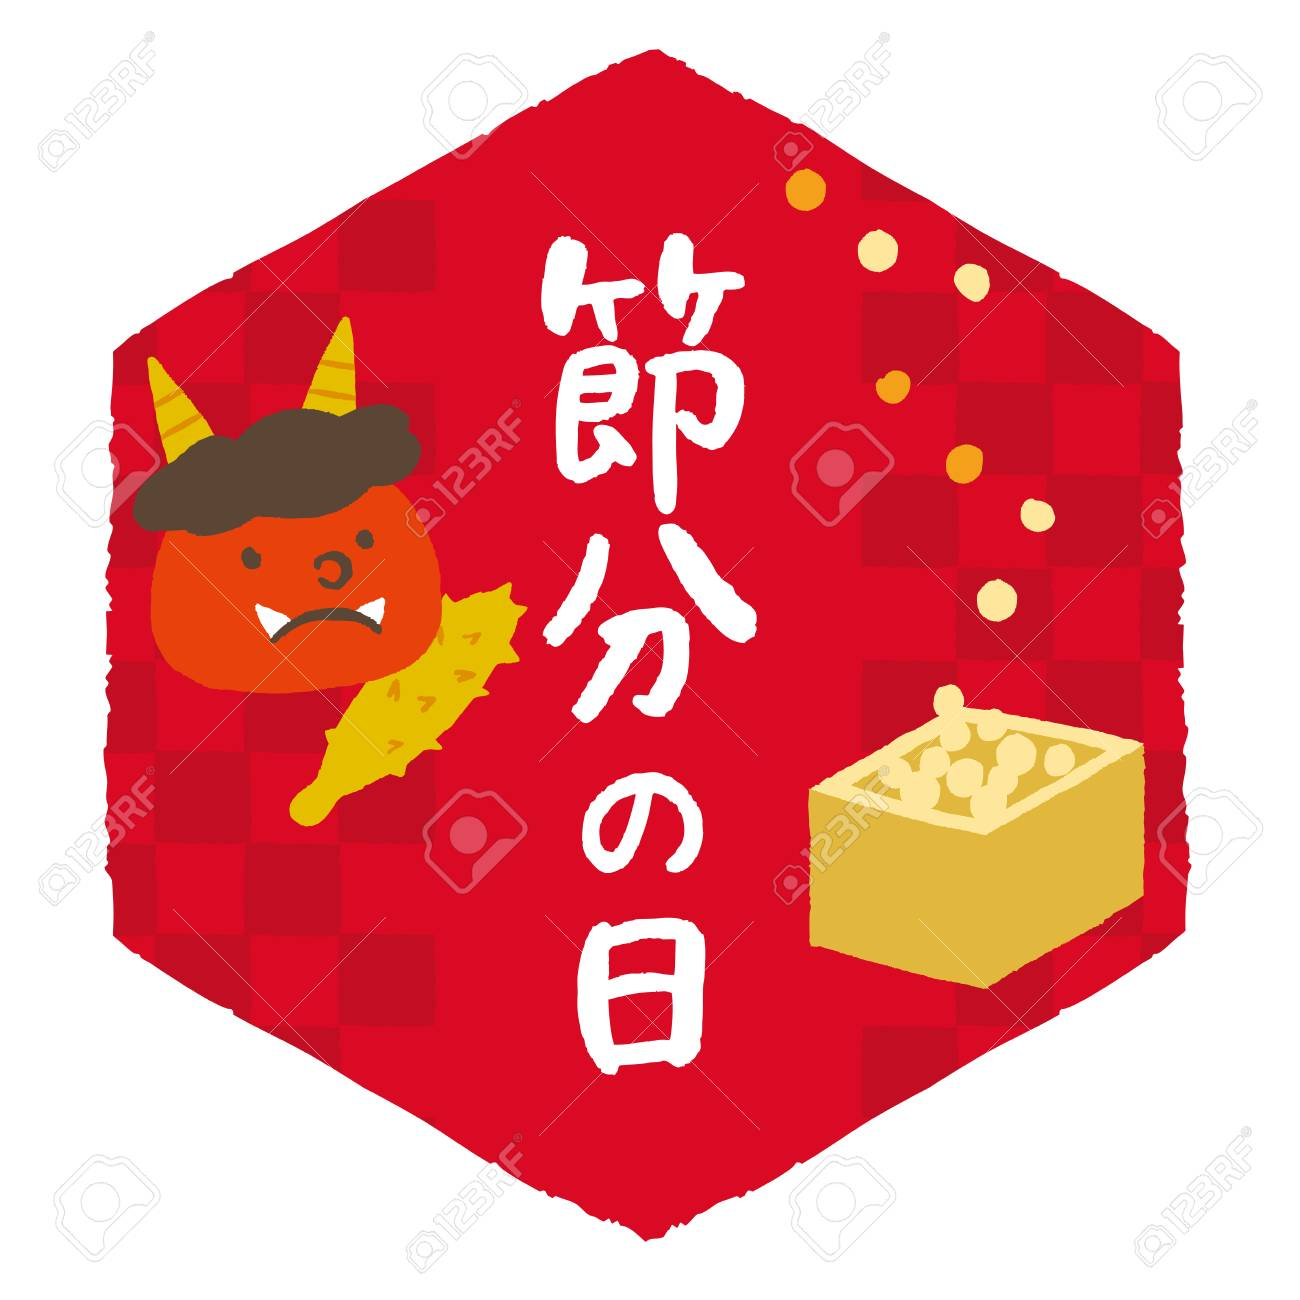 Setsubun illustrations. Setsubun:Japanese traditional event on February 3. People throw soy-beans at devil. - 84974591